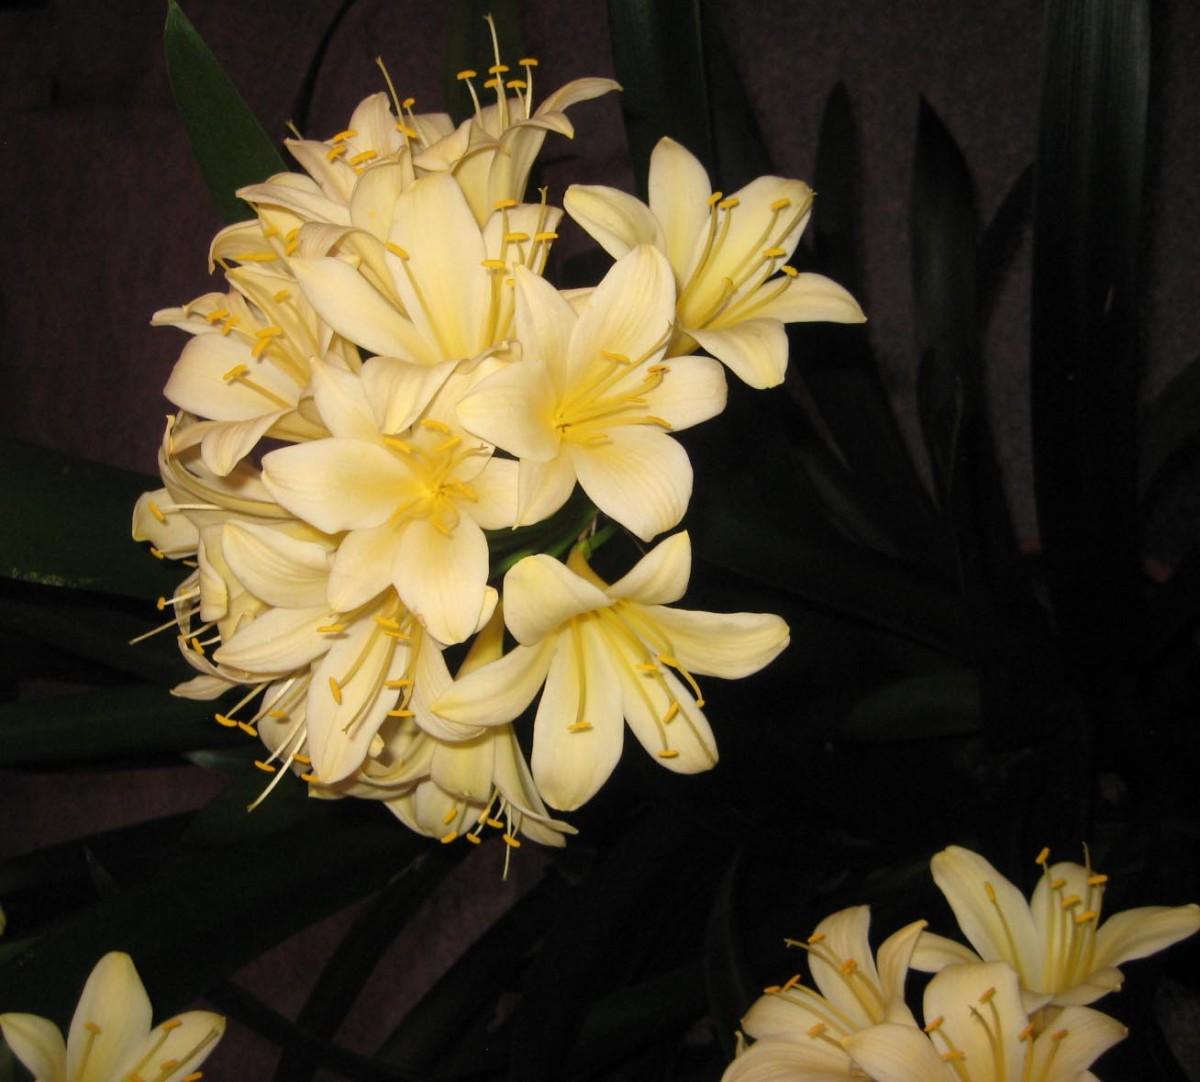 Beautiful clivea with yellow blooms at the Philadelphia Flower Show 2017